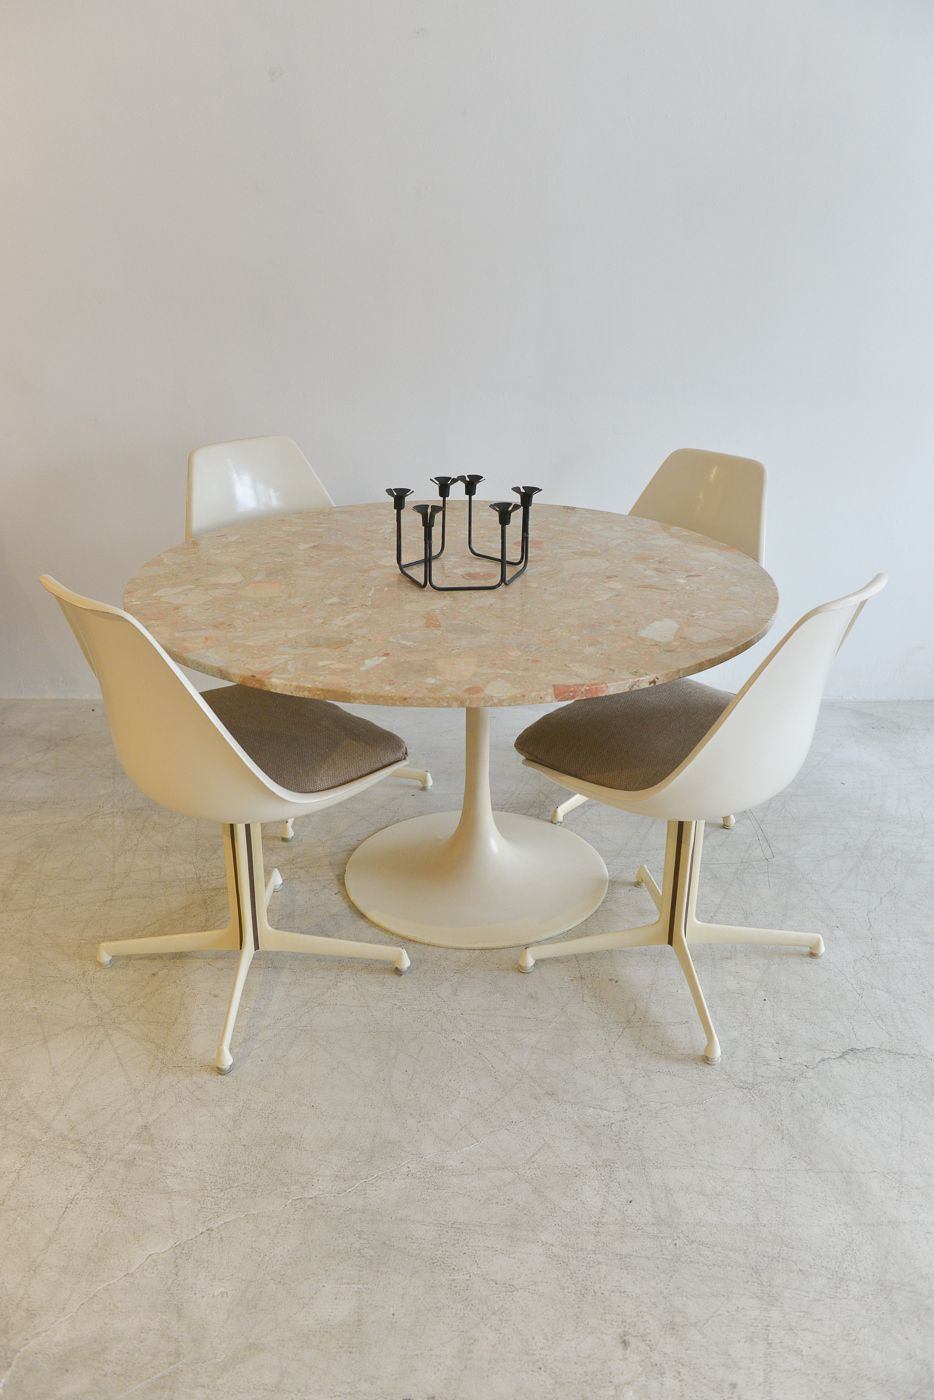 Vintage Burke Tulip Dining Set Round 48 Marble Table 4 Star Base Chairs